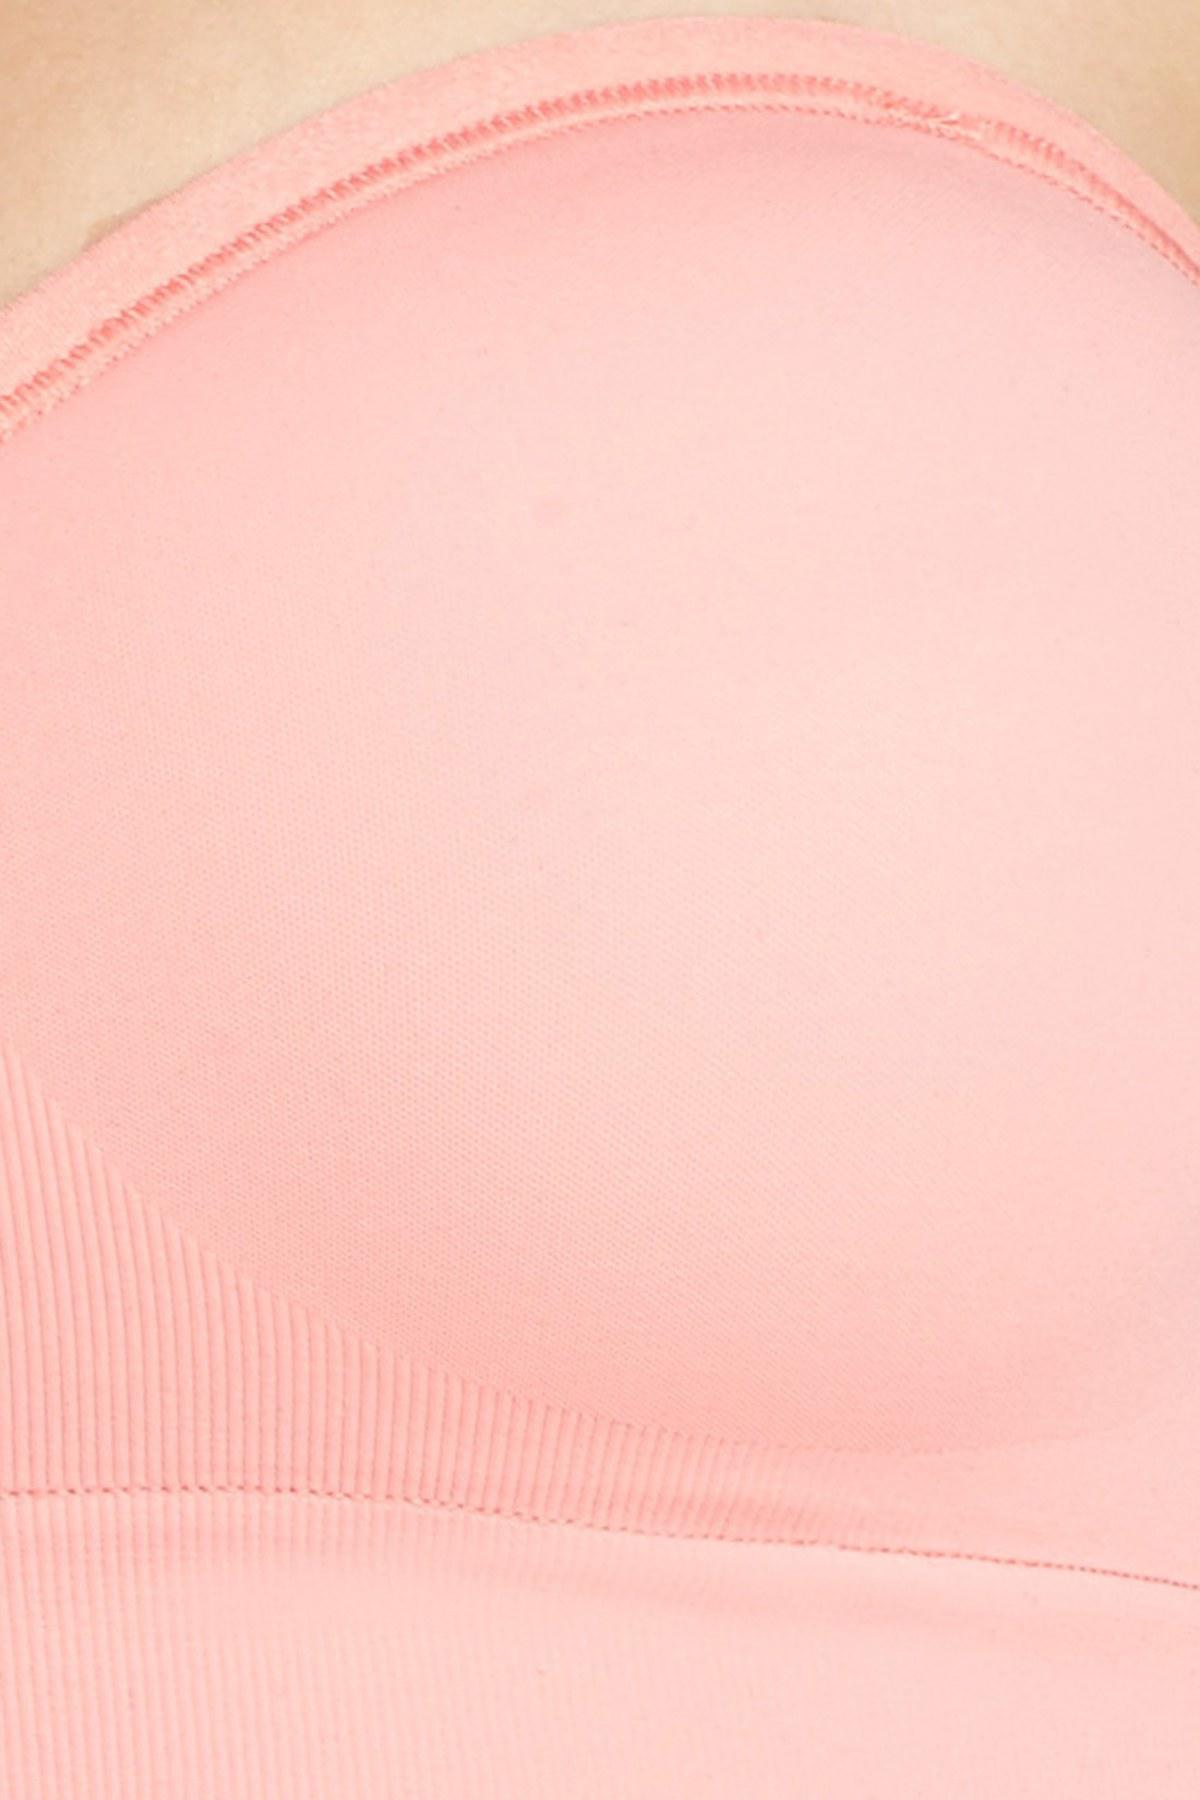 633fbeb62b52f Lyst - Yummie By Heather Thomson Peyton Convertible Wireless Bra in Pink